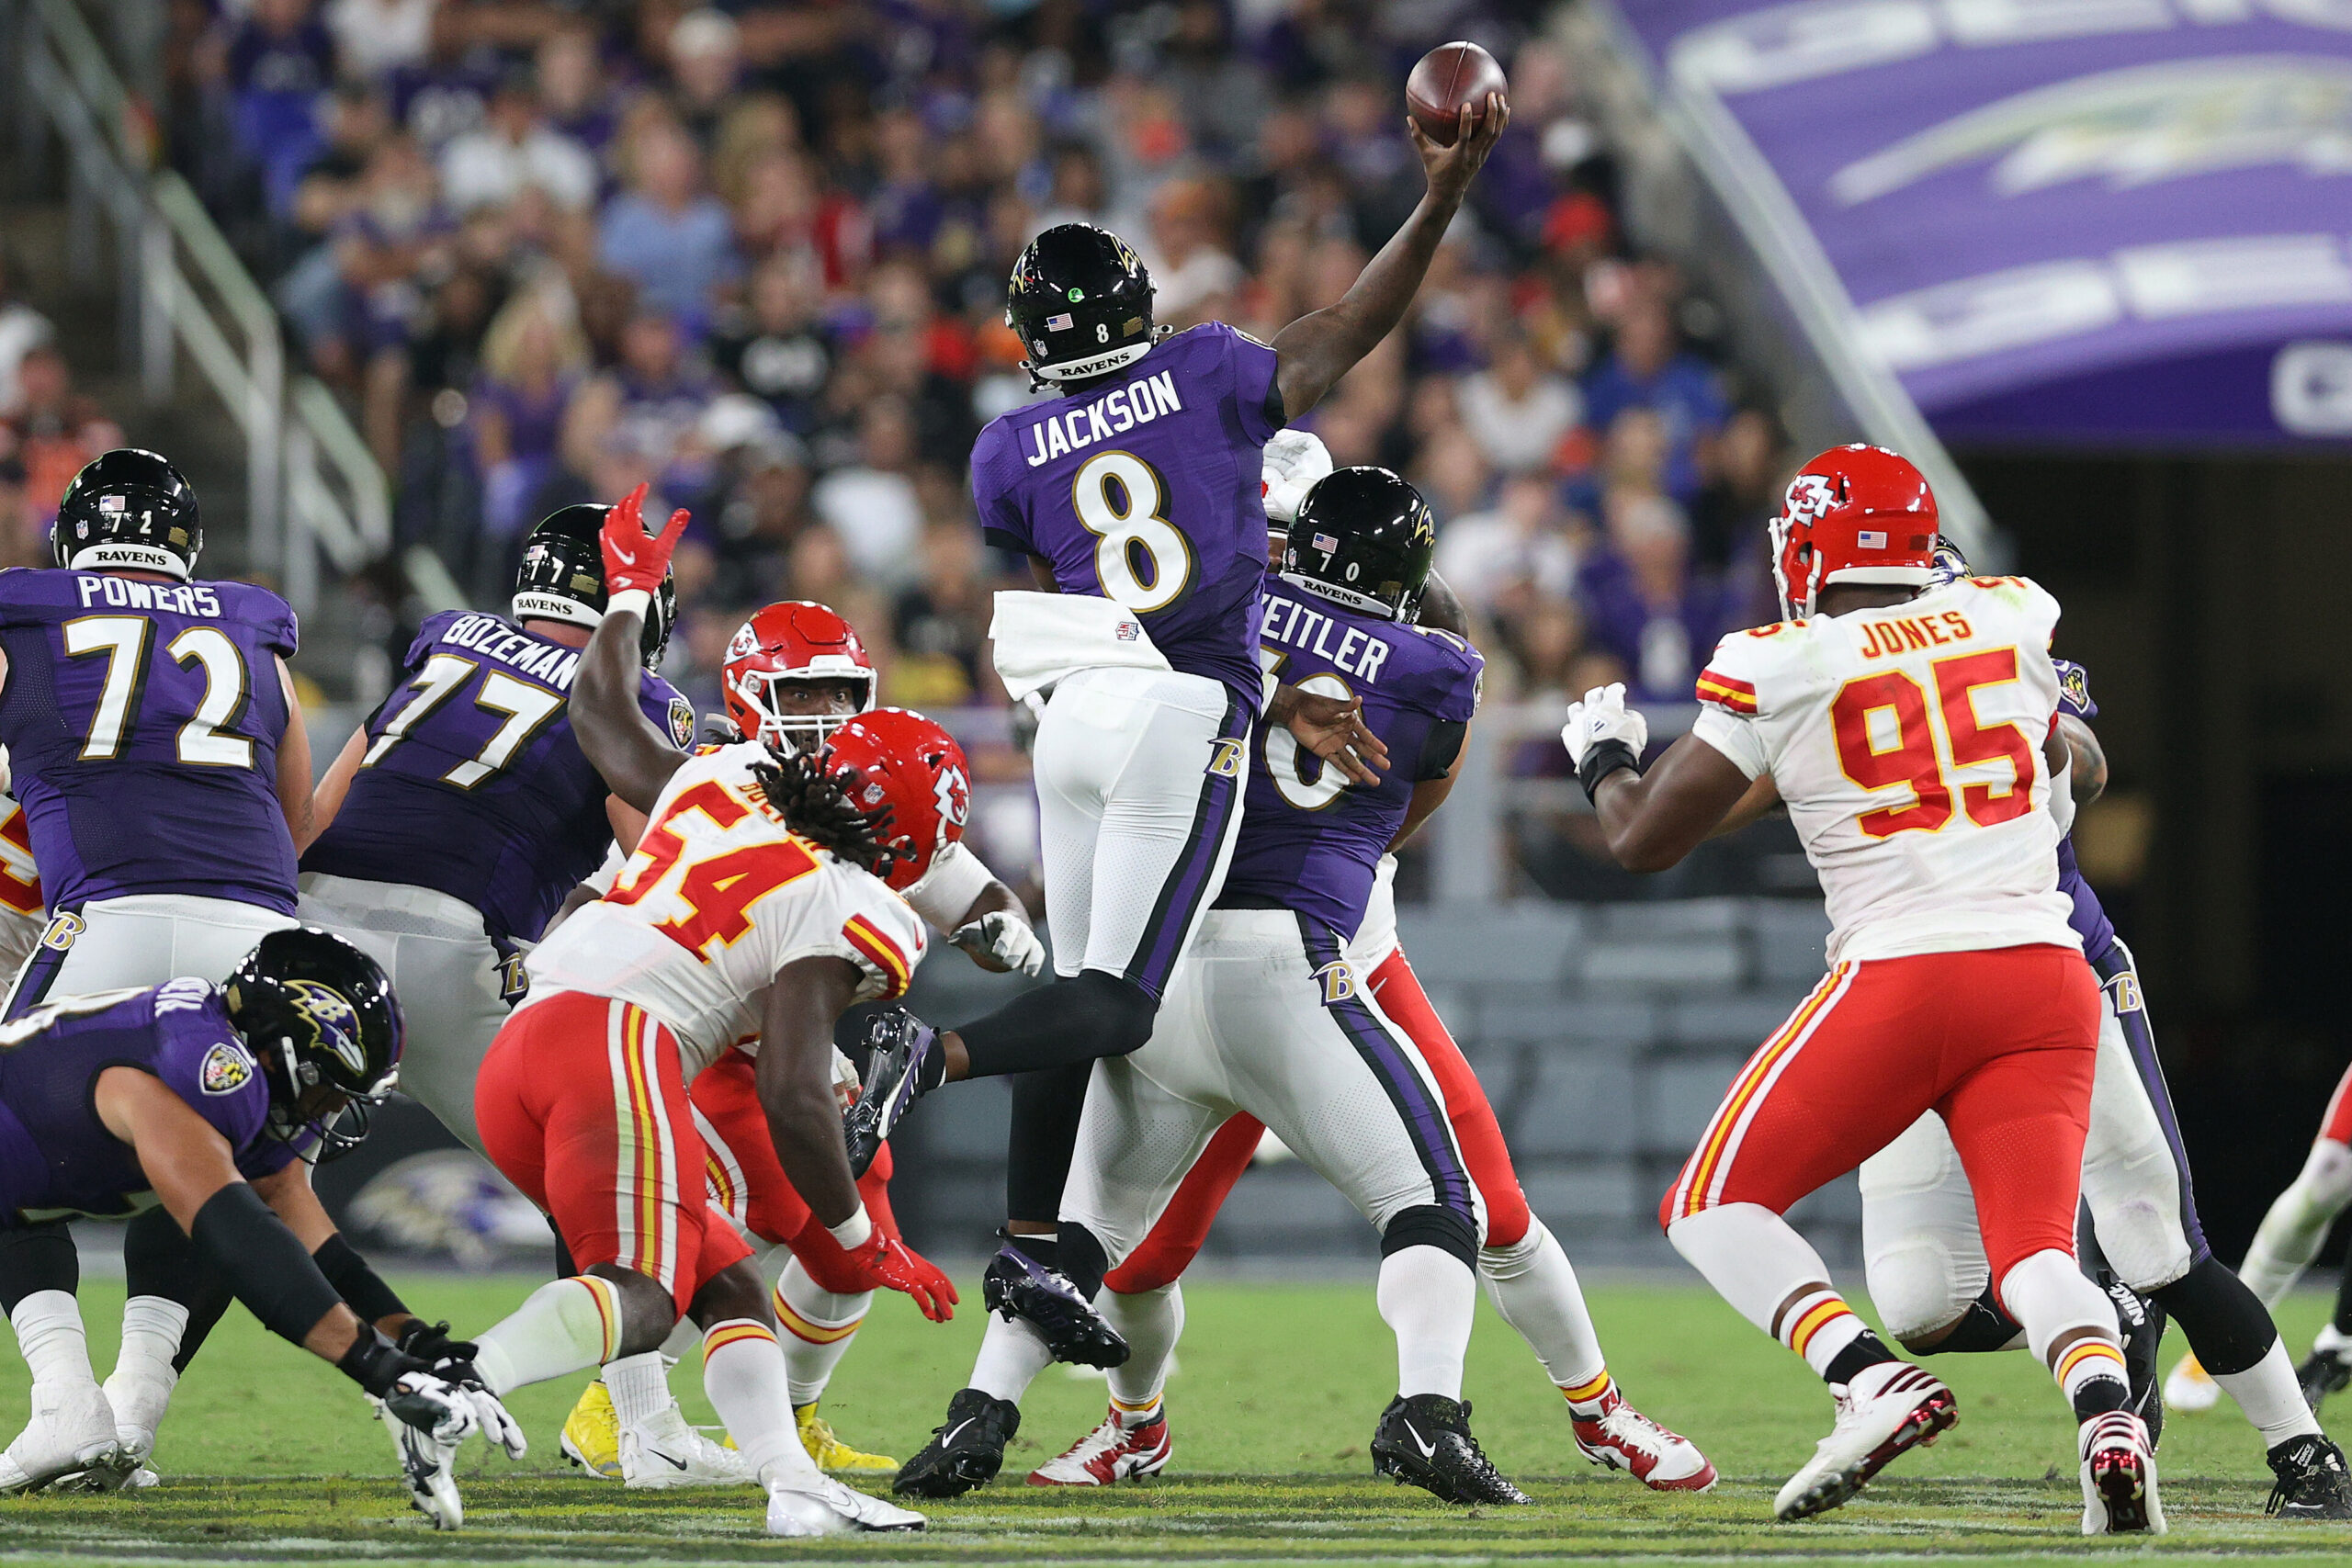 <i>Rob Carr/Getty Images</i><br/>Jackson throws a touchdown while in midair against the Chiefs.